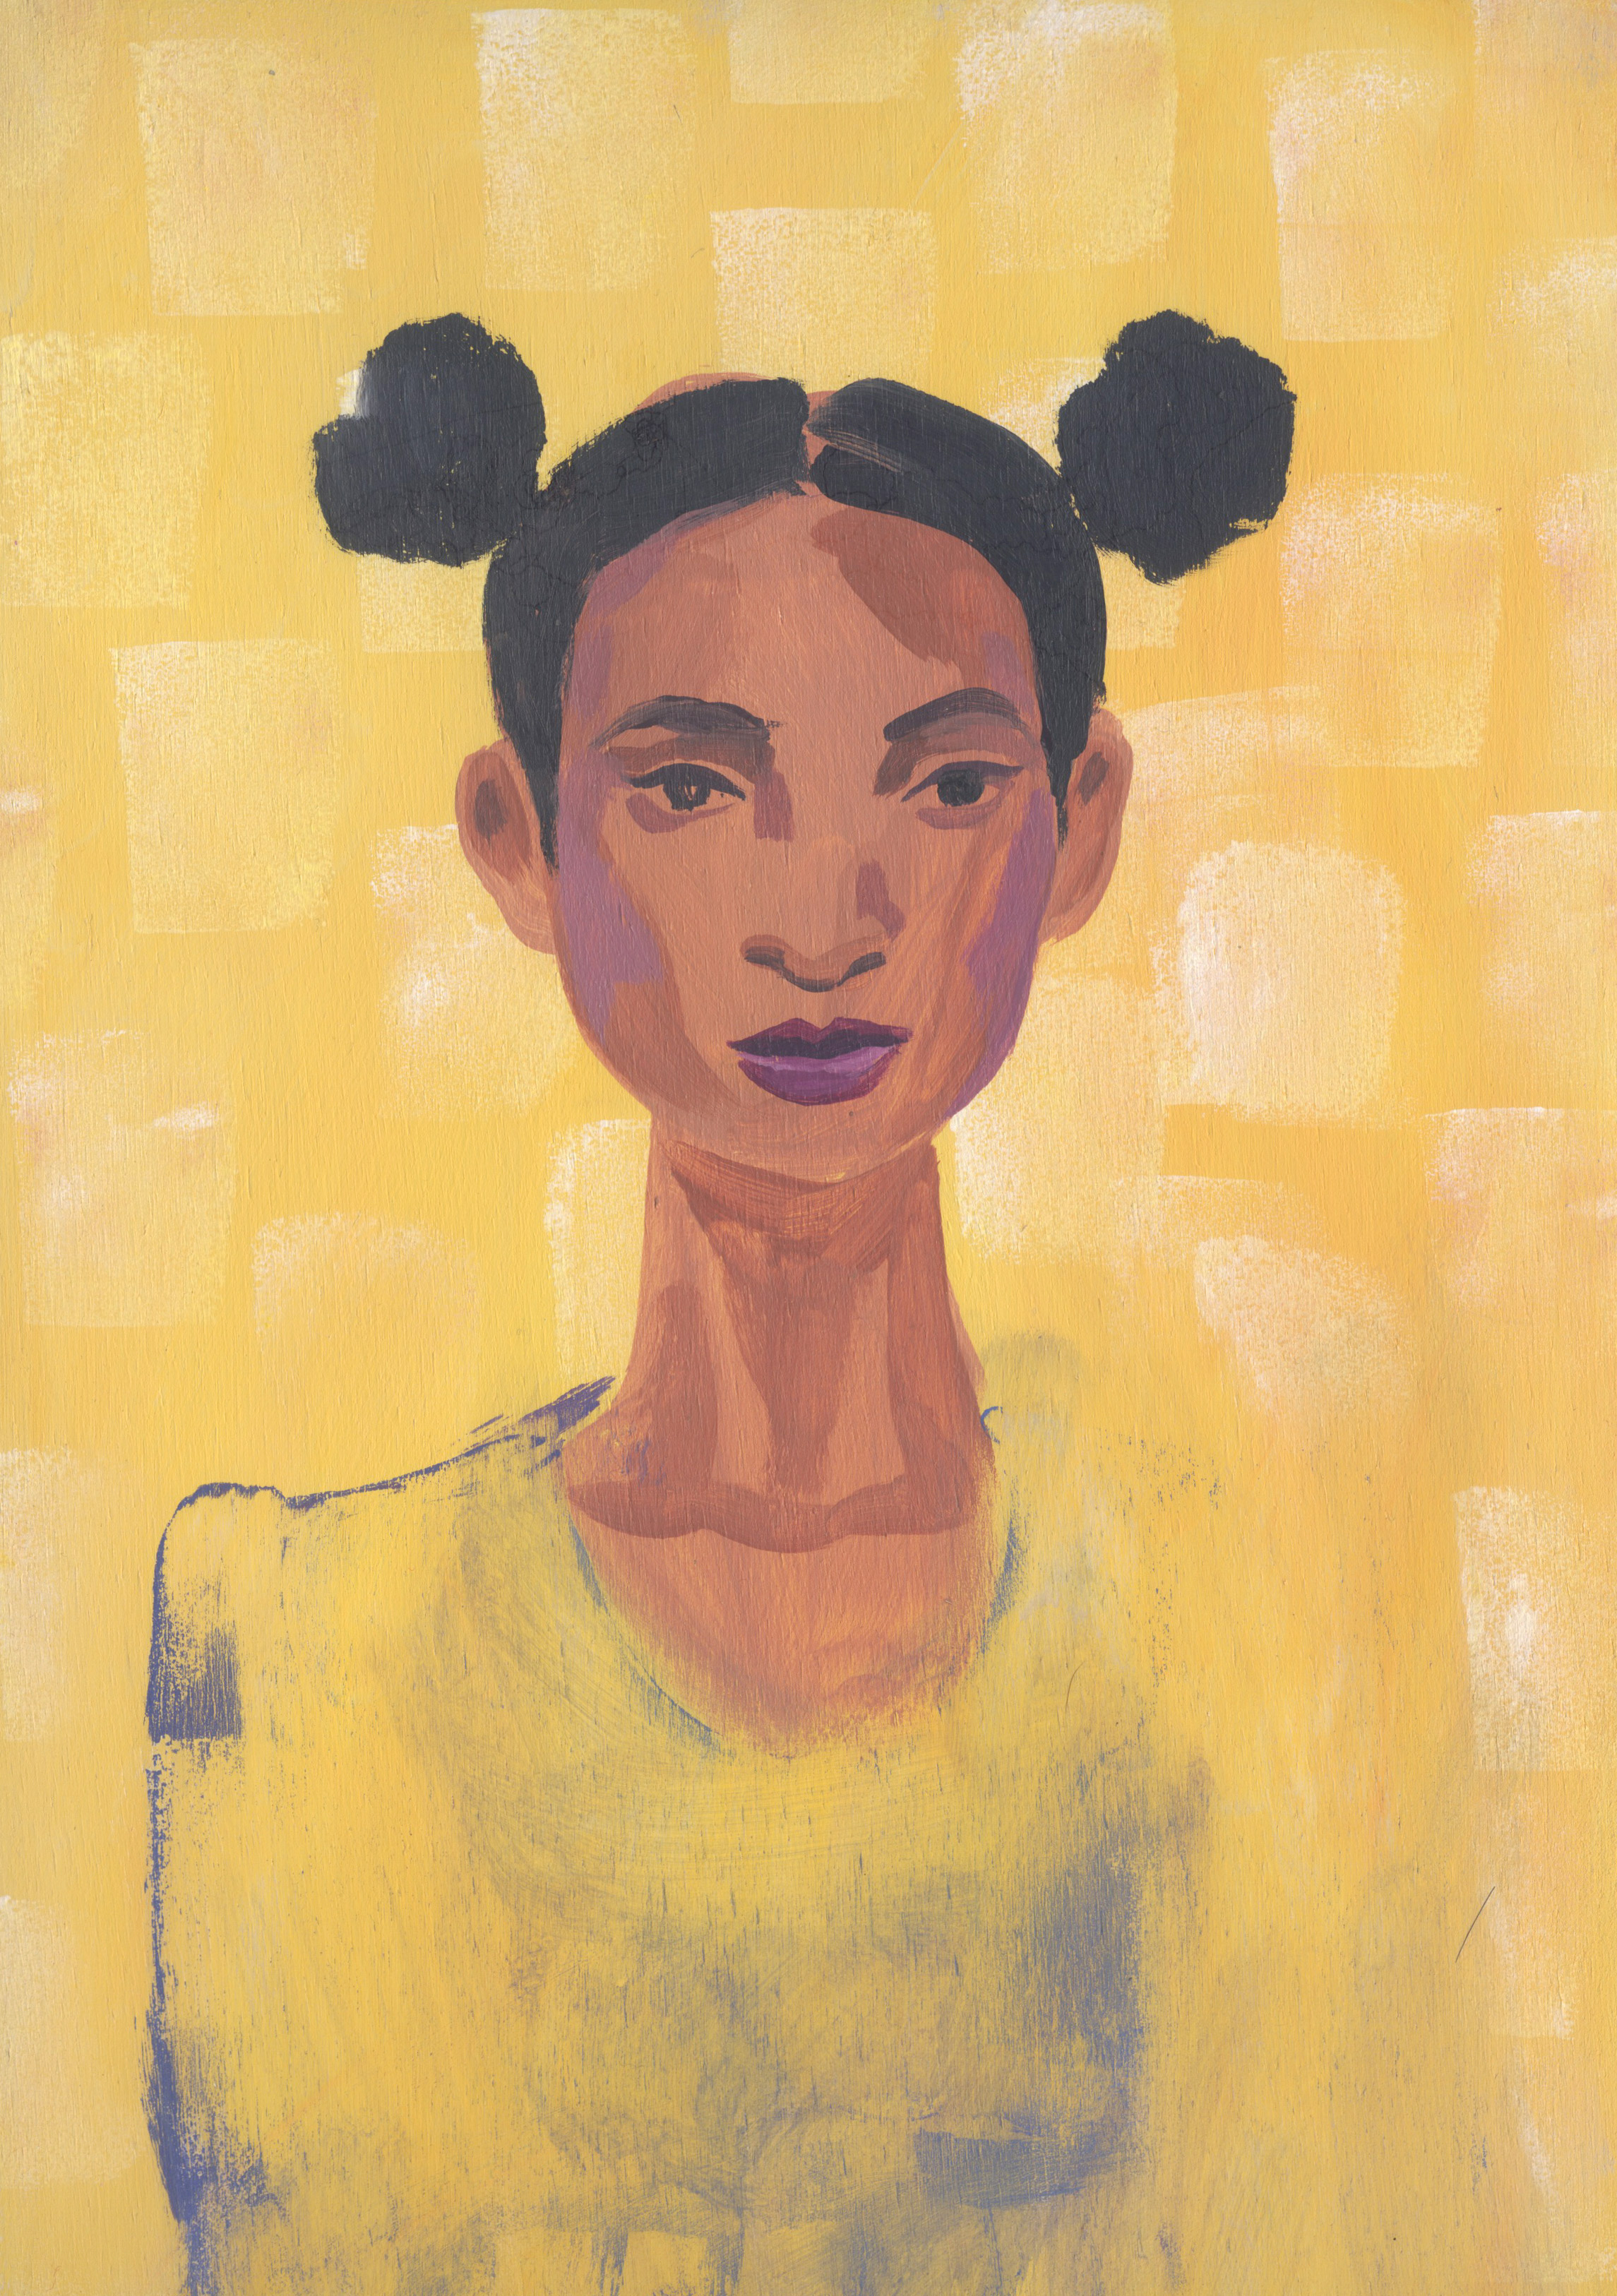 lady-on-yellow.jpg